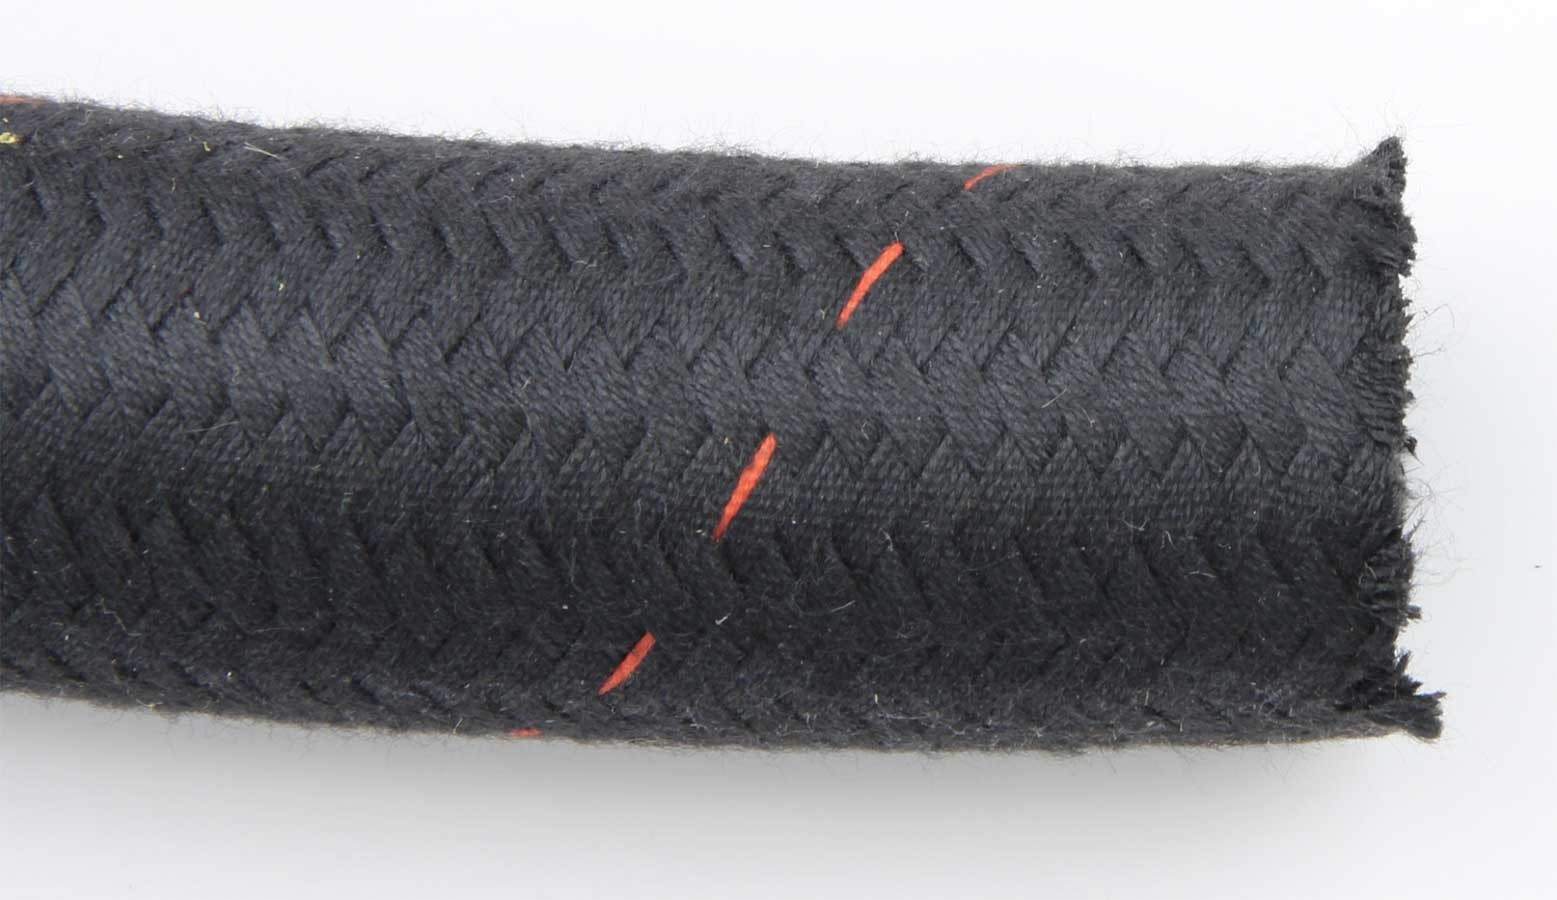 Aeroquip FCU1220 Hose, Startlite Racing Hose, 12 AN, 20 ft, Braided Nomex / Kevlar, AQP Smooth Bore, Black, Each